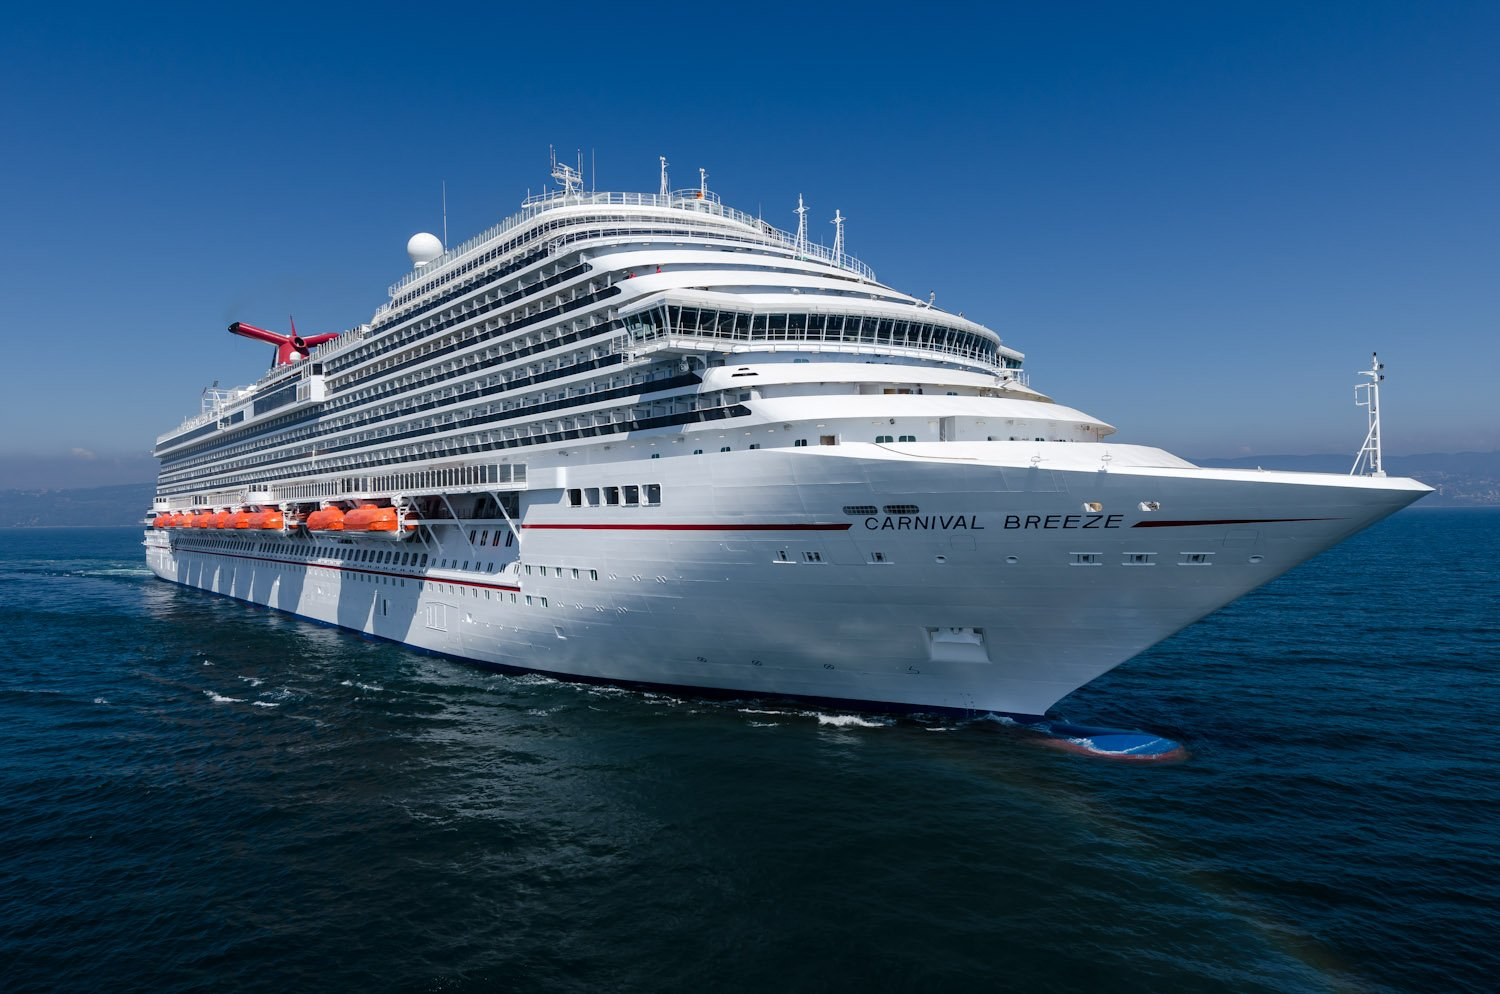 Carnival Cruise Lines Takes Delivery of New Carnival Breeze 1500x994